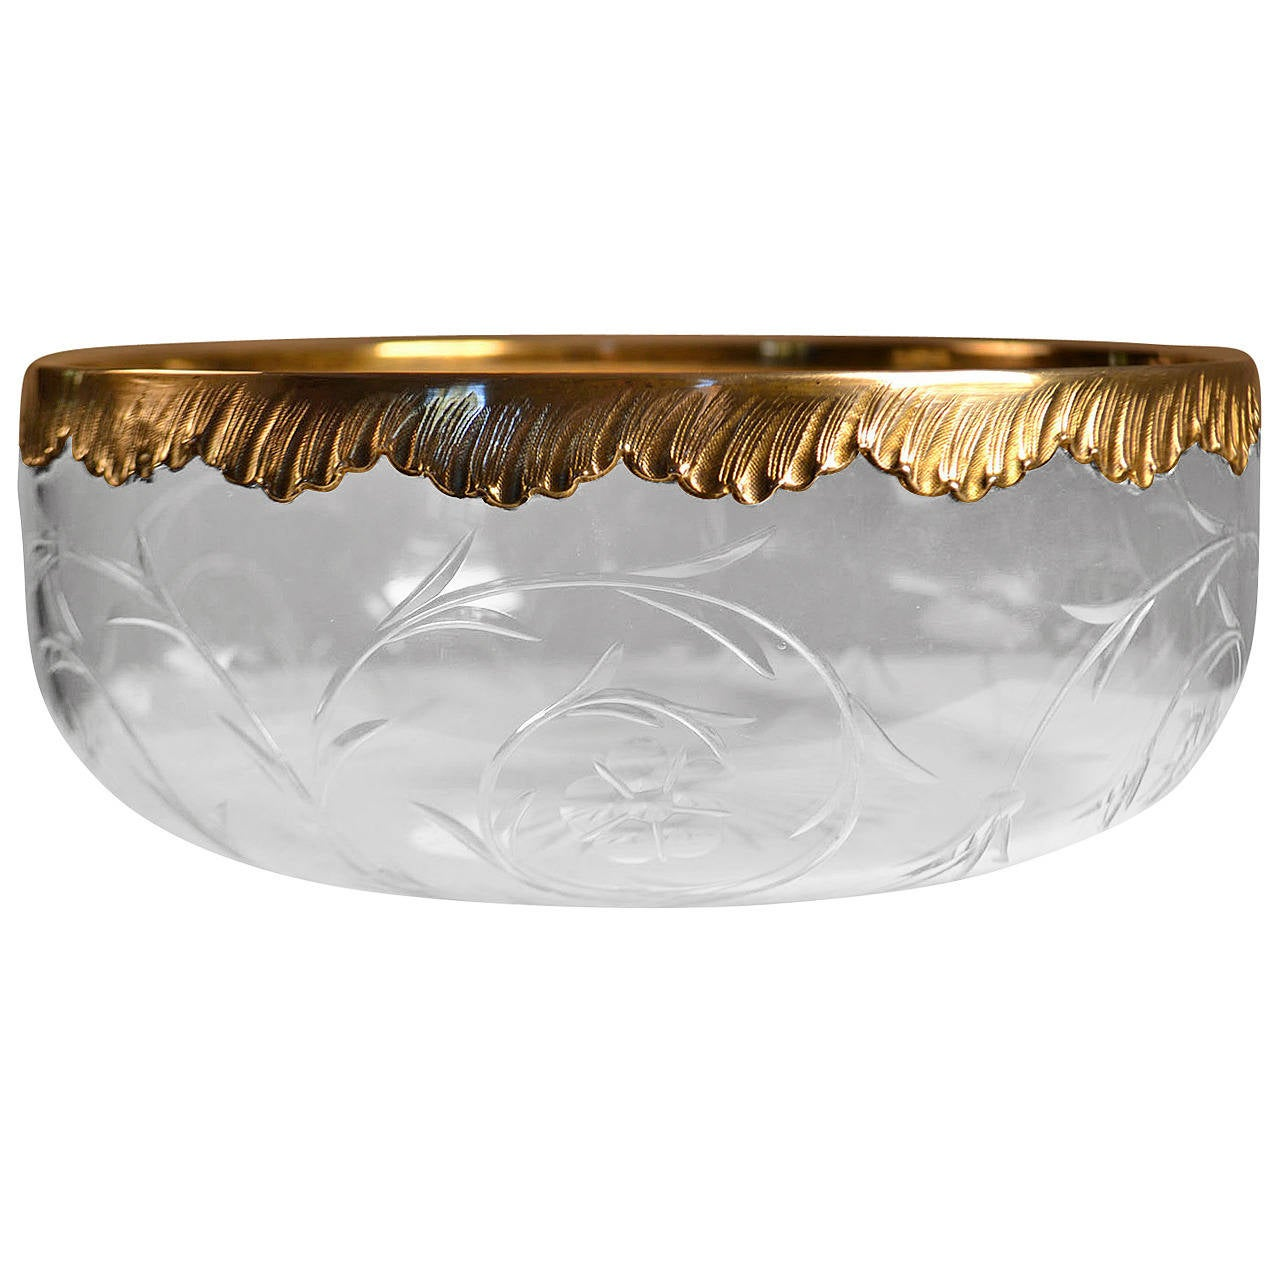 20th Century Roger Duclos Sterling Silver and Crystal Salad Bowl